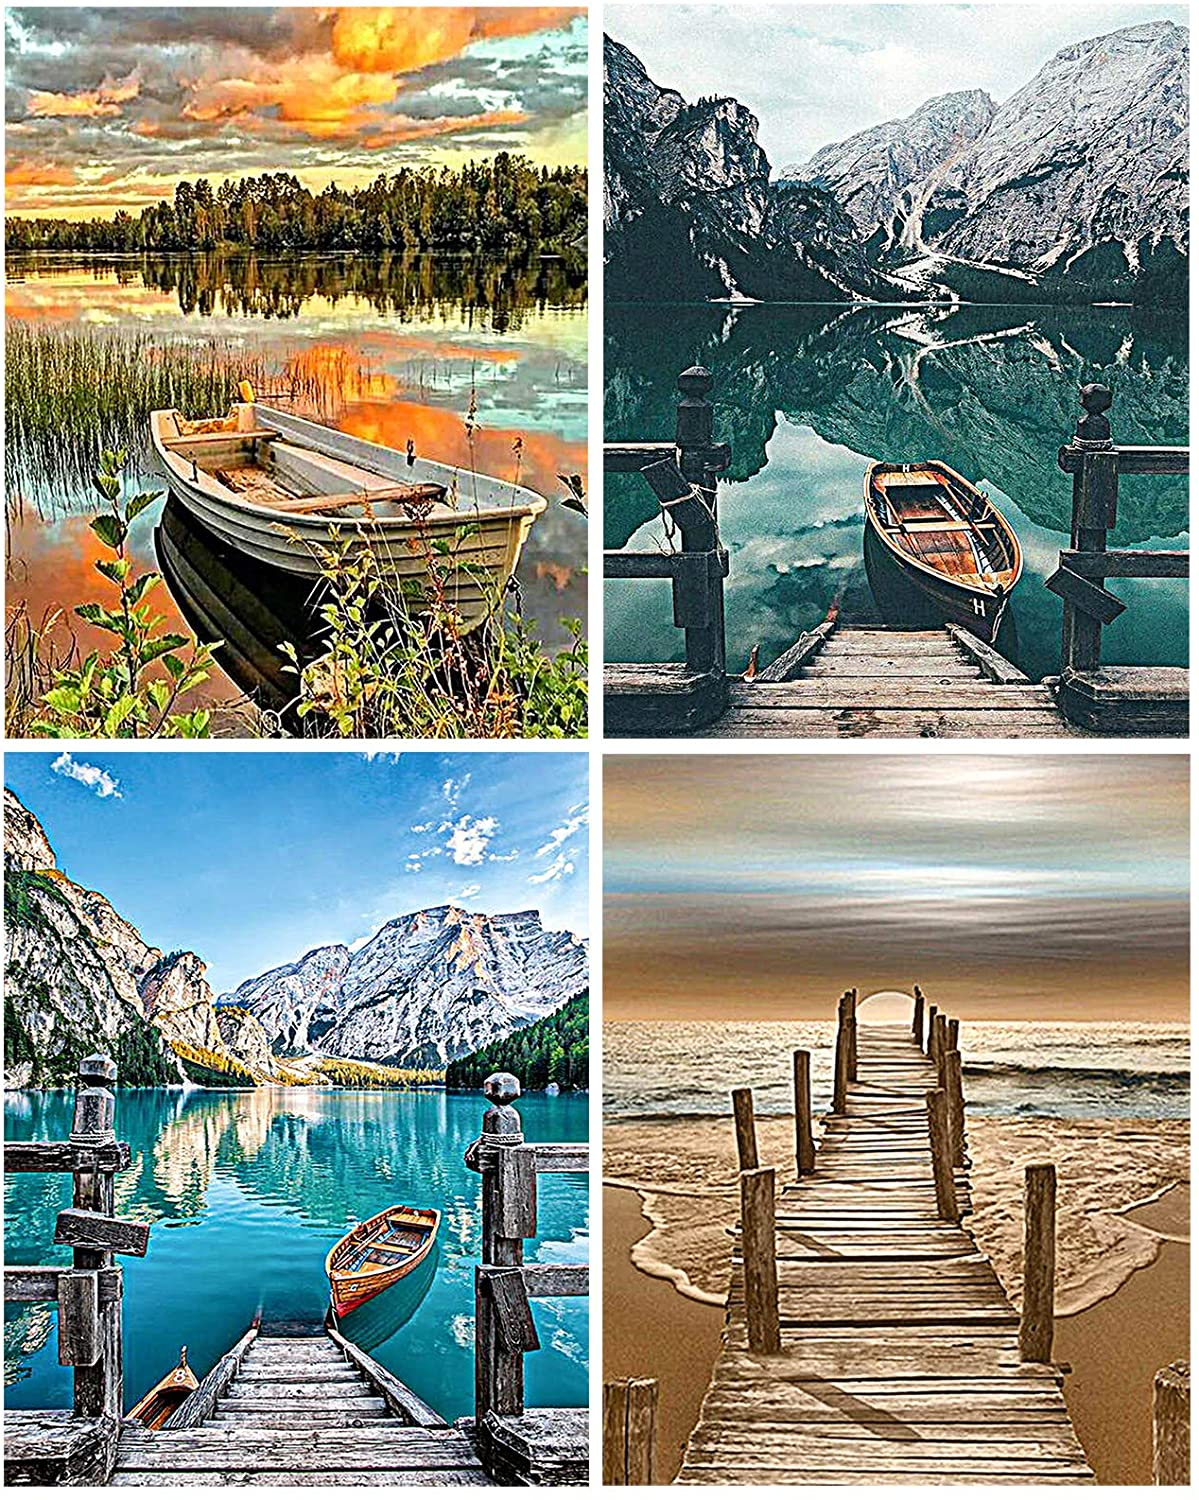 Aodaer 4 Pack DIY Numbers Oil Painting Pre-Printed Canvas Painting Lakeside Boat Beginner Painting for Home Wall Decor, 16 x 20 Inch